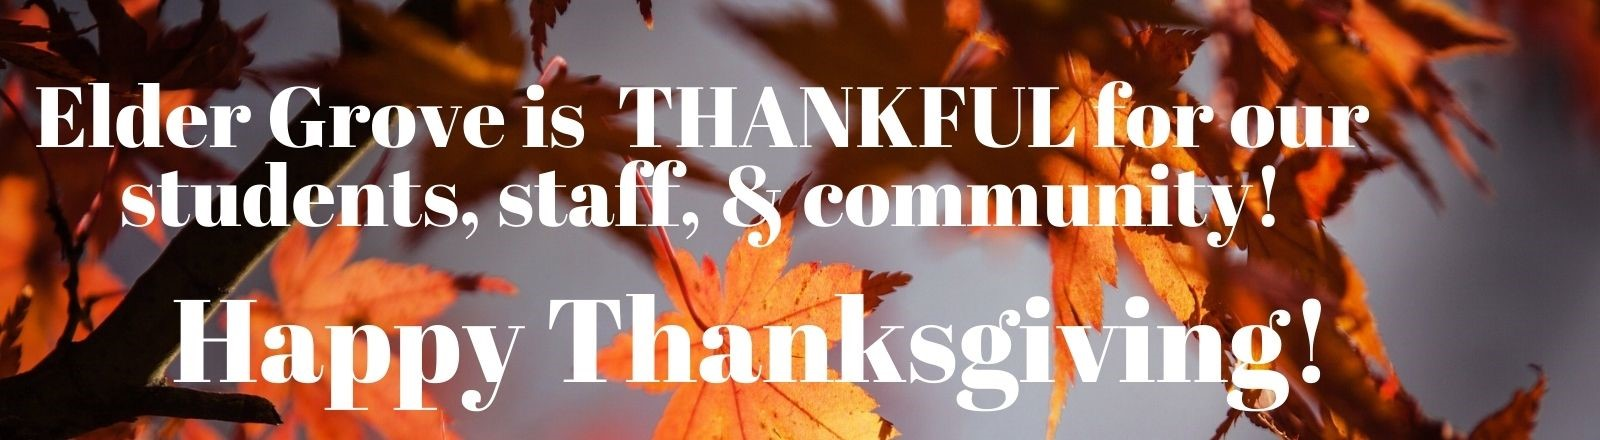 Elder Grove is Thankful for our students, staff, and community. Happy Thanksgiving! This has a photo of leaves behind it.